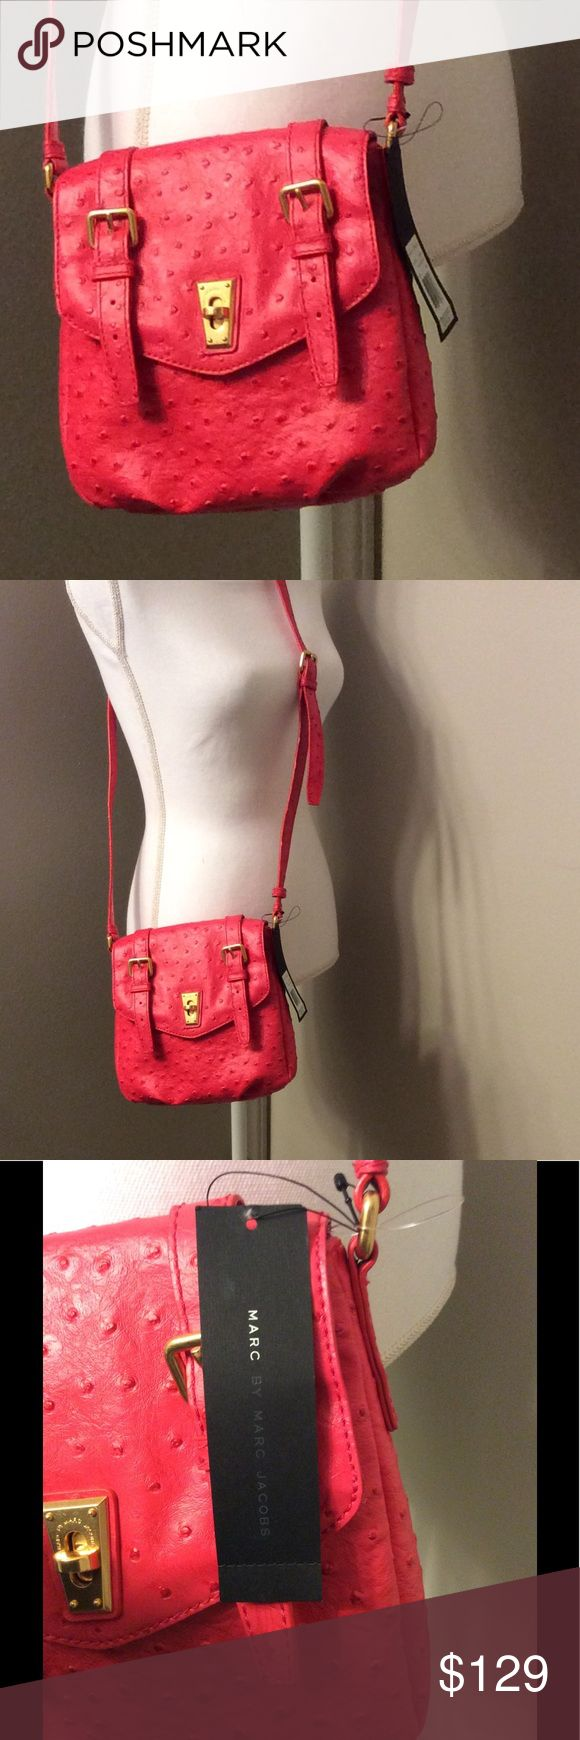 Marc by Marc Jacobs Pebbled Leather Crossbody Authentic Marc by Marc Jacobs crossbody in coral pink pebbled leather with gold tone hardware. Marc by Marc Jacobs Bags Crossbody Bags